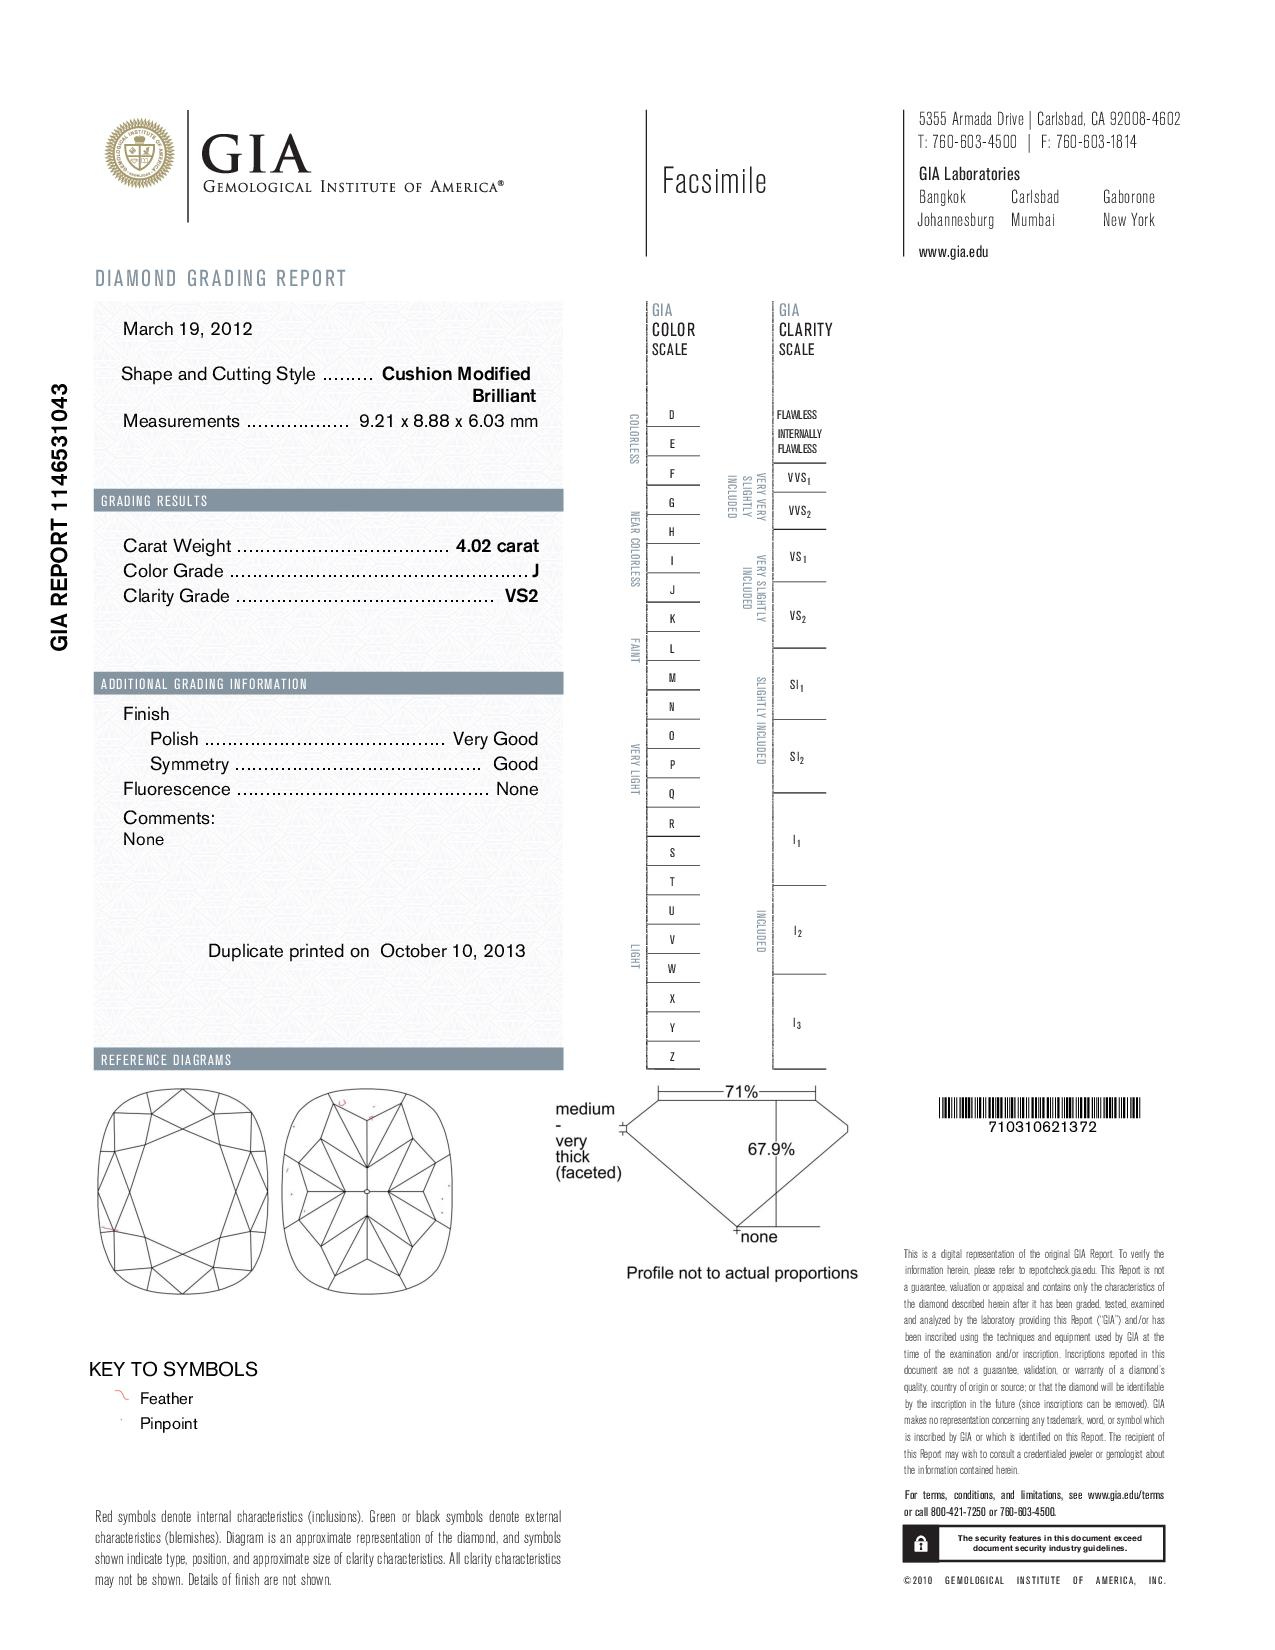 This is a 4.02 carat cushion shape, J color, VS2 clarity natural diamond accompanied by a GIA grading report.